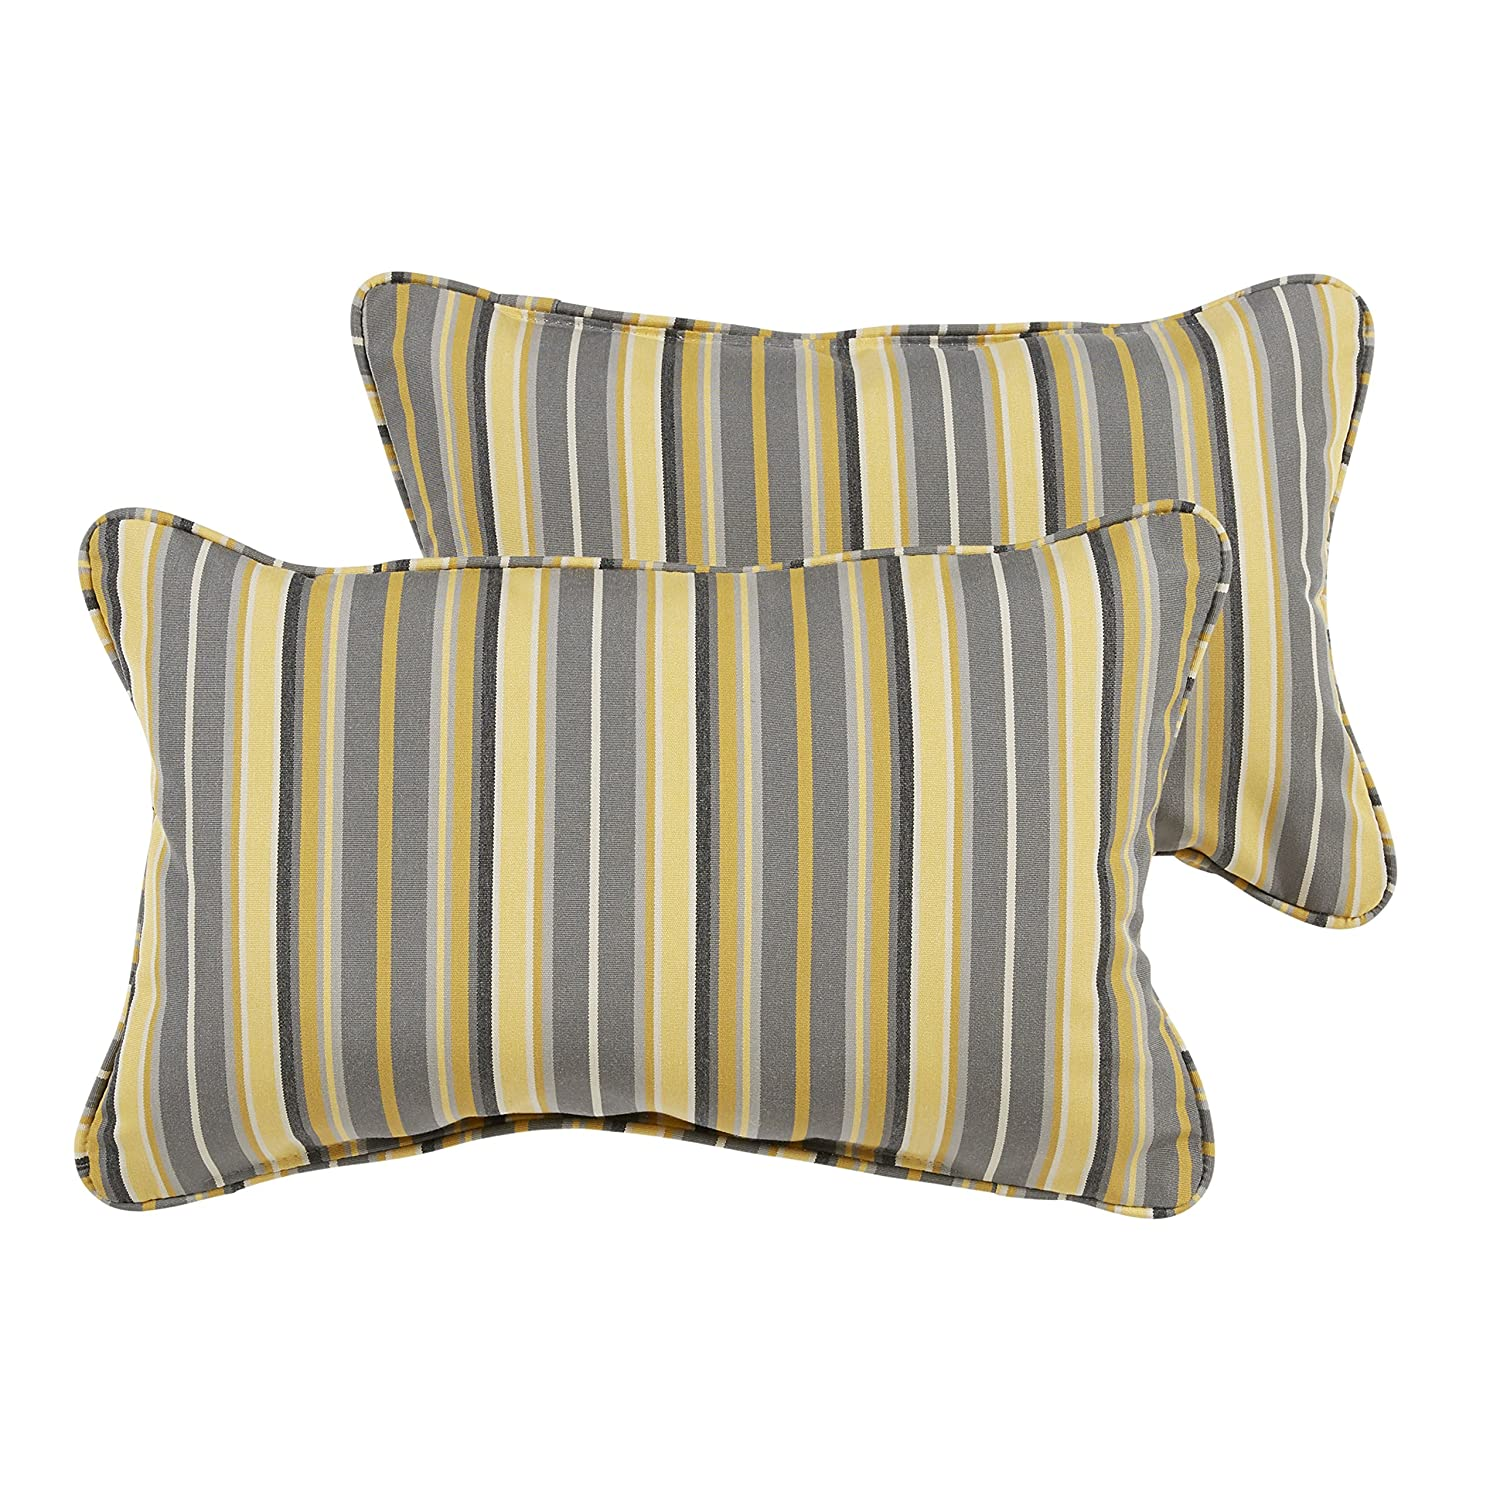 Mozaic AZPS6457 Indoor Outdoor Sunbrella Lumbar Pillows with Corded Edges, Set of 2 12 x 18 Yellow Grey Stripes